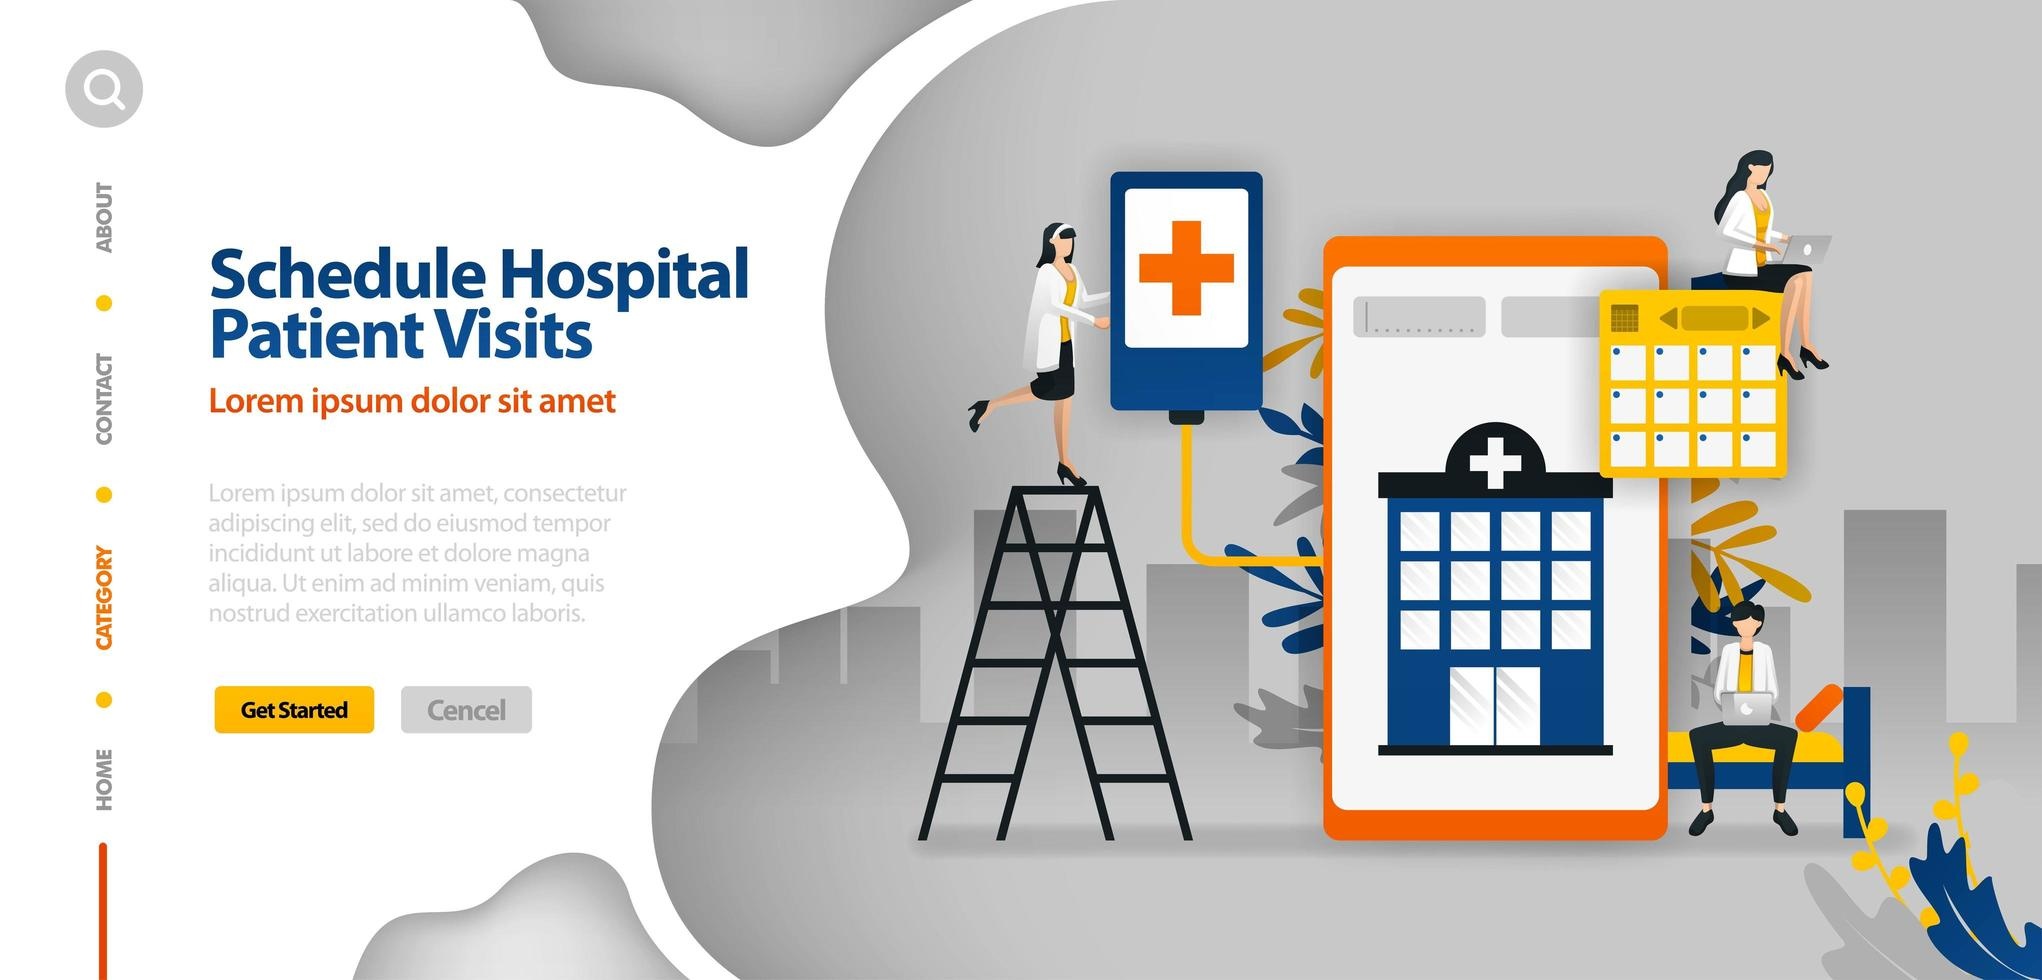 Hospital Patient Visits Schedule, hospital scheduling, hospital planning application. Vector illustration concept can be use for landing page, template, ui ux, web, mobile app, poster, banner, website